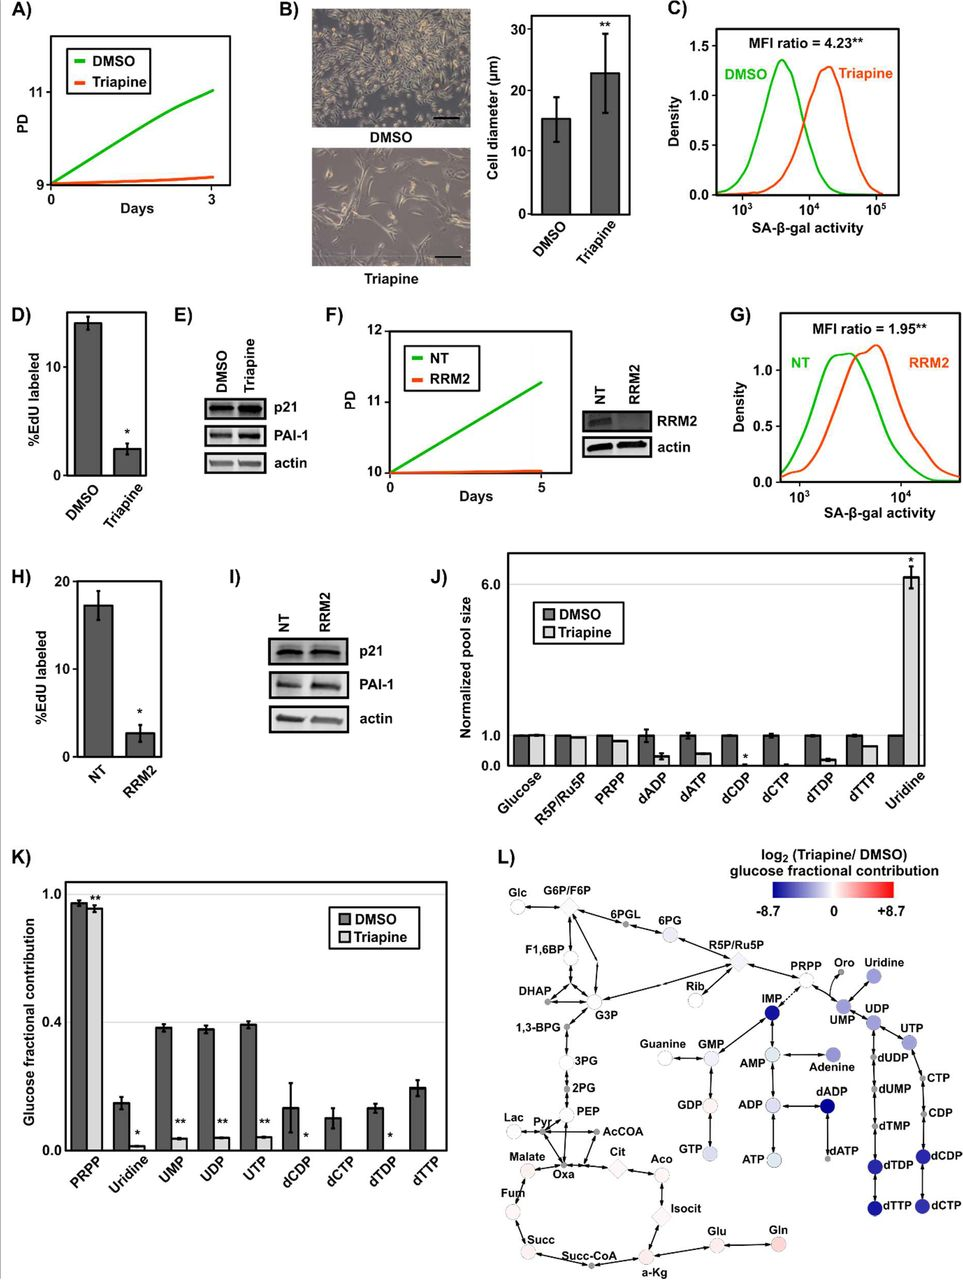 Inhibition of nucleotide synthesis mediates replicative senescence